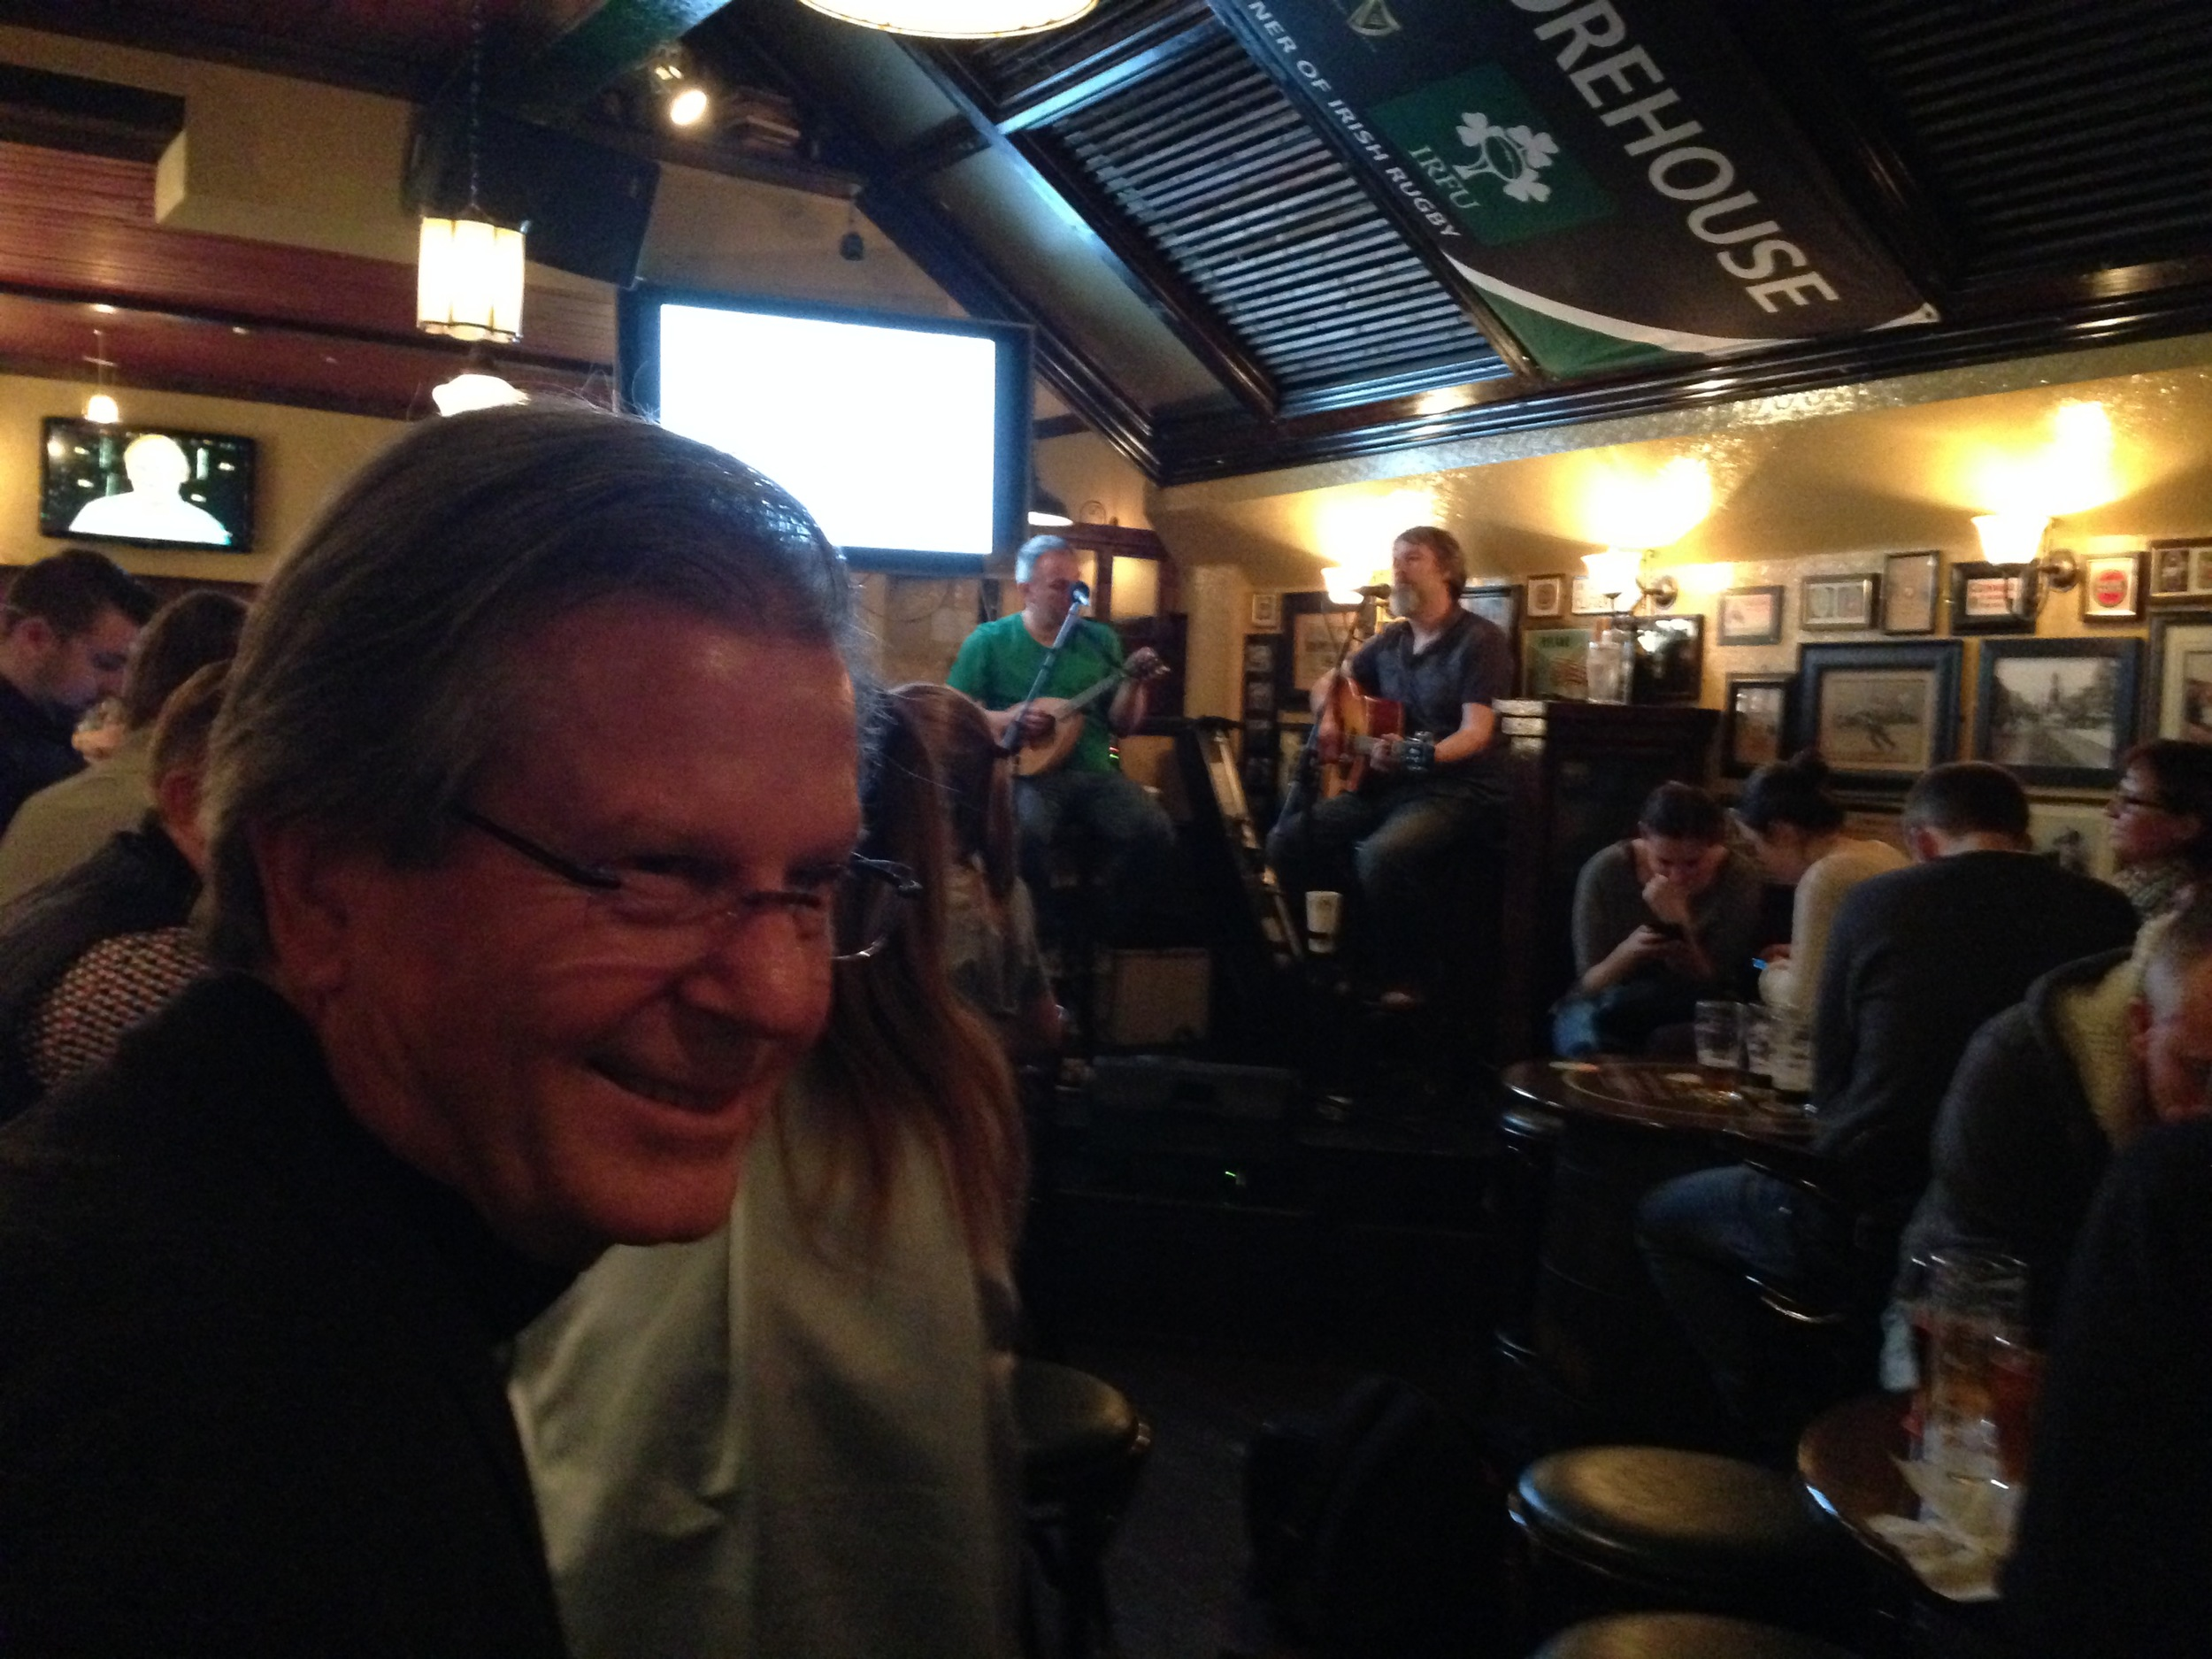 At a pub listening to traditional Irish music.